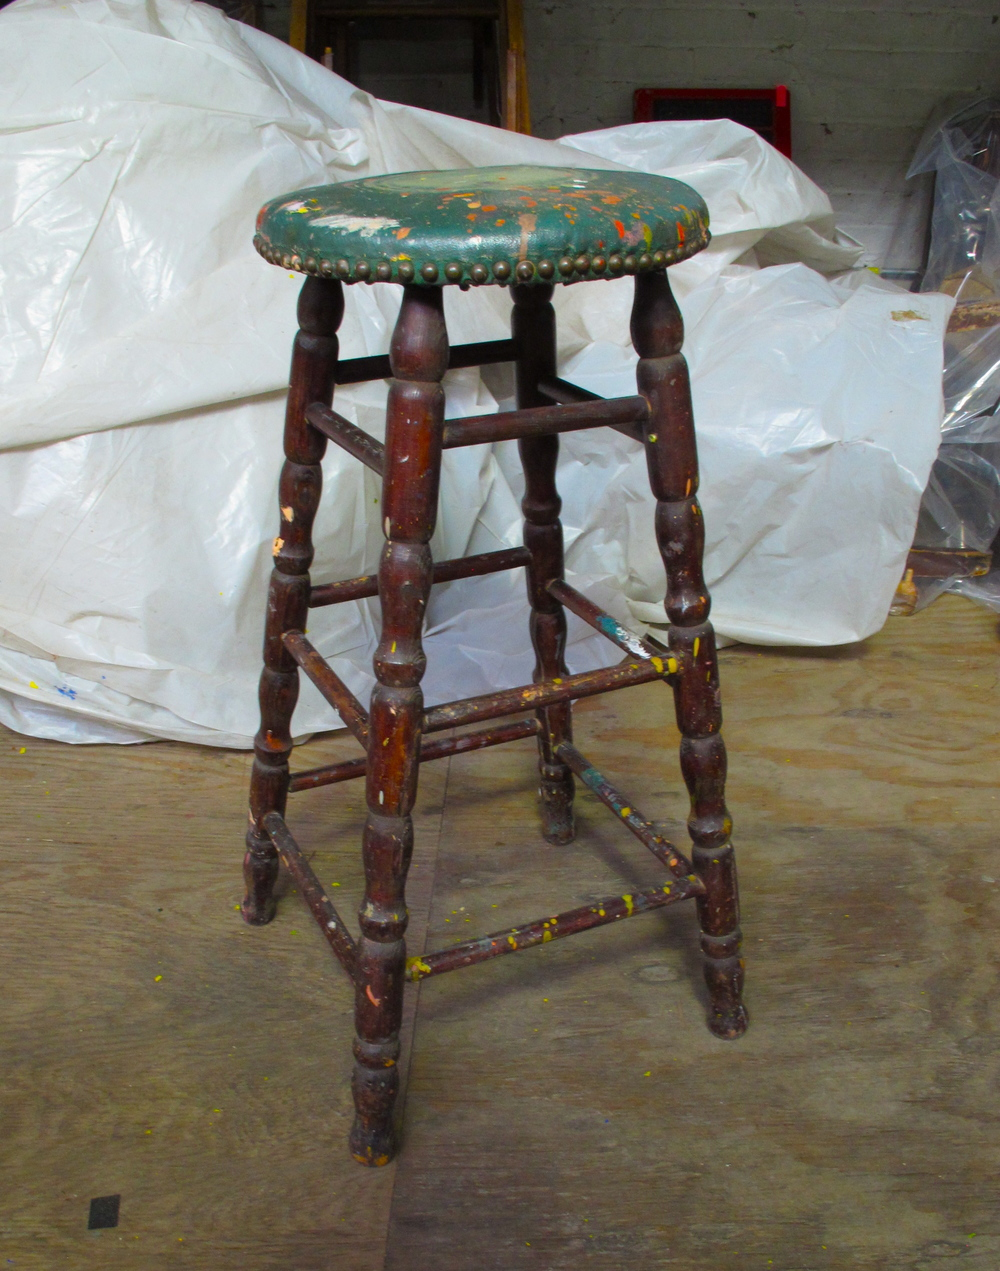 reen Seated Painter's stool $30